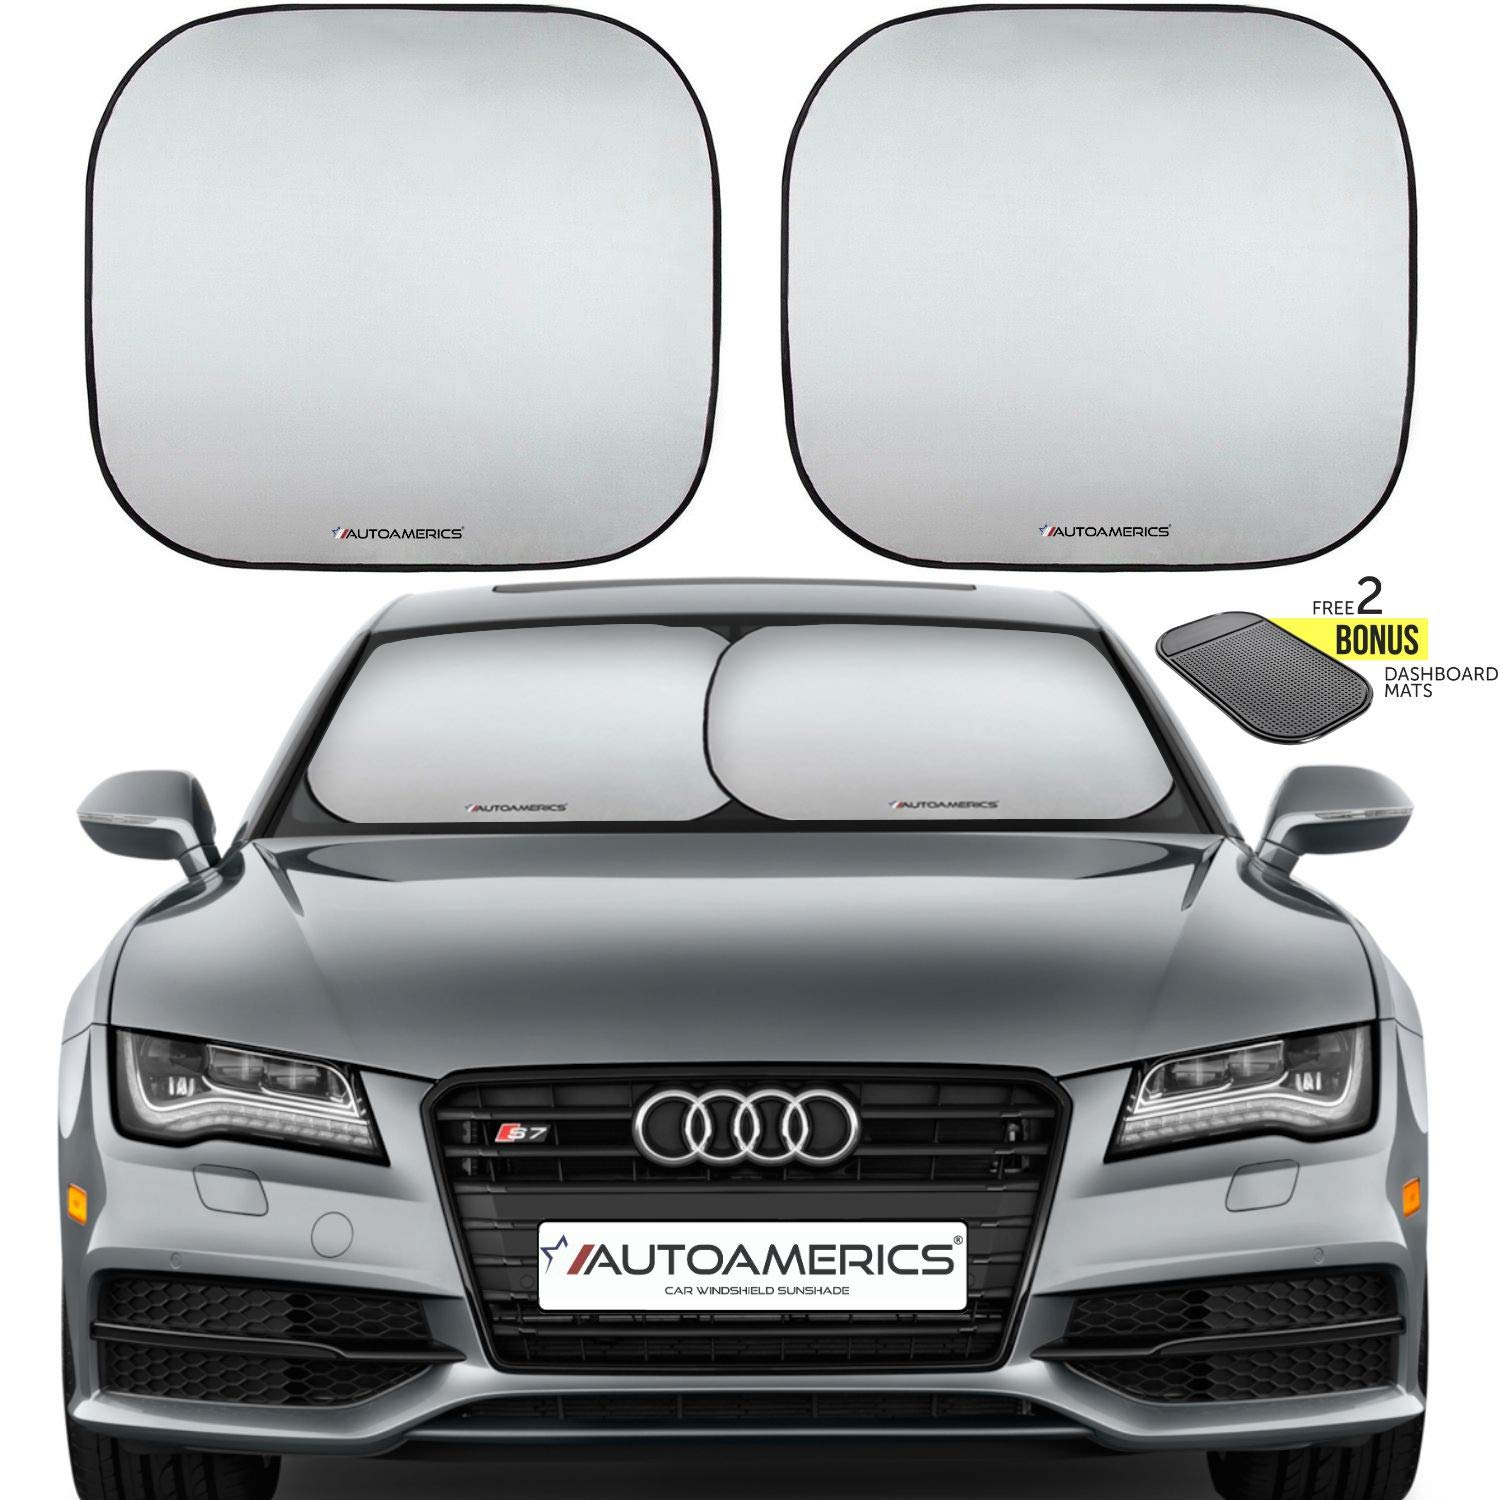 Autoamerics Windshield Sun Shade 2-Piece Foldable